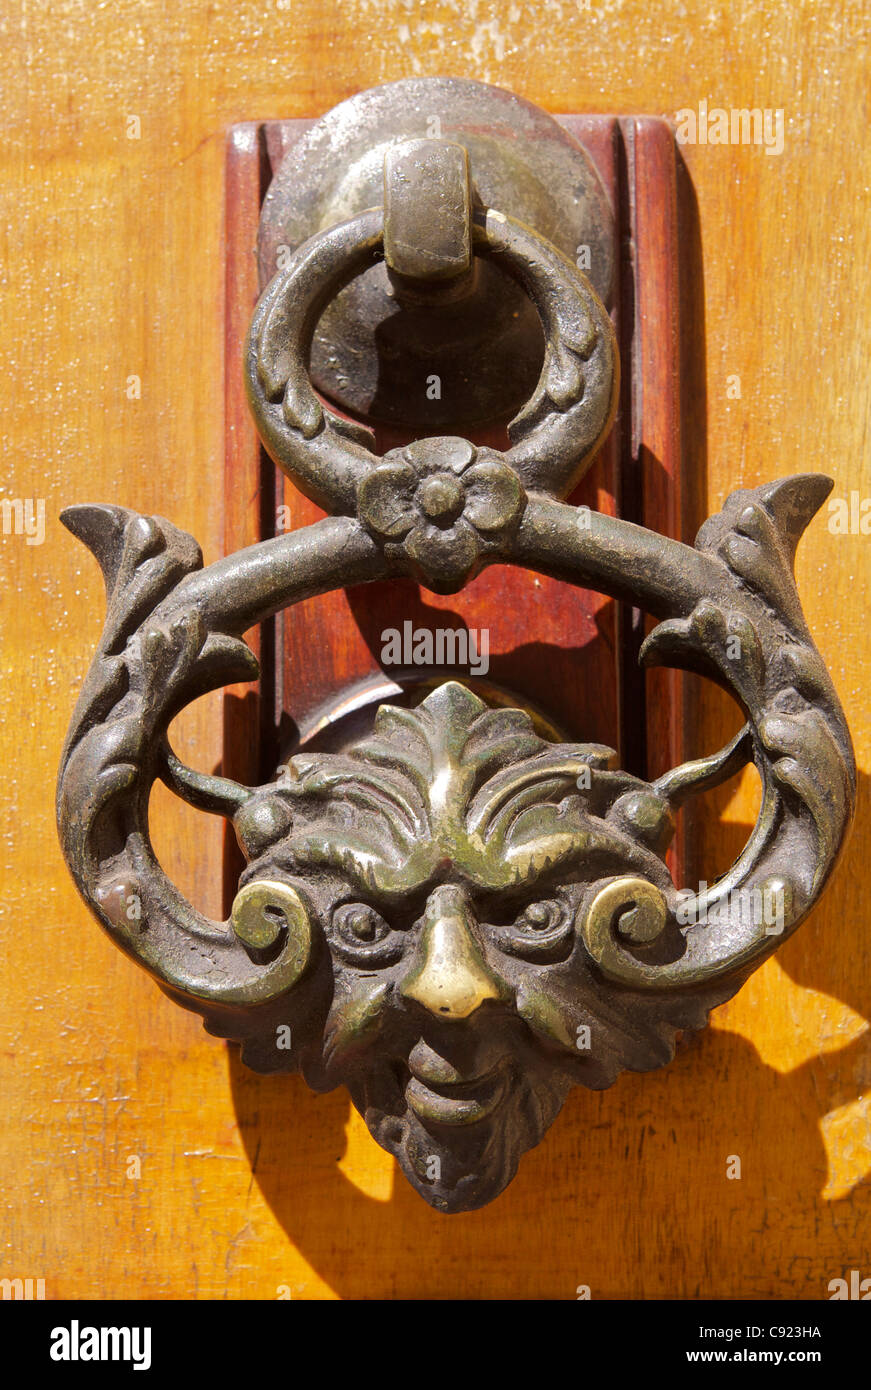 An Ornate Door Knocker In The Shape Of A Human Face, With A Wicked  Expression, On A Door In The Town Of Mosta.